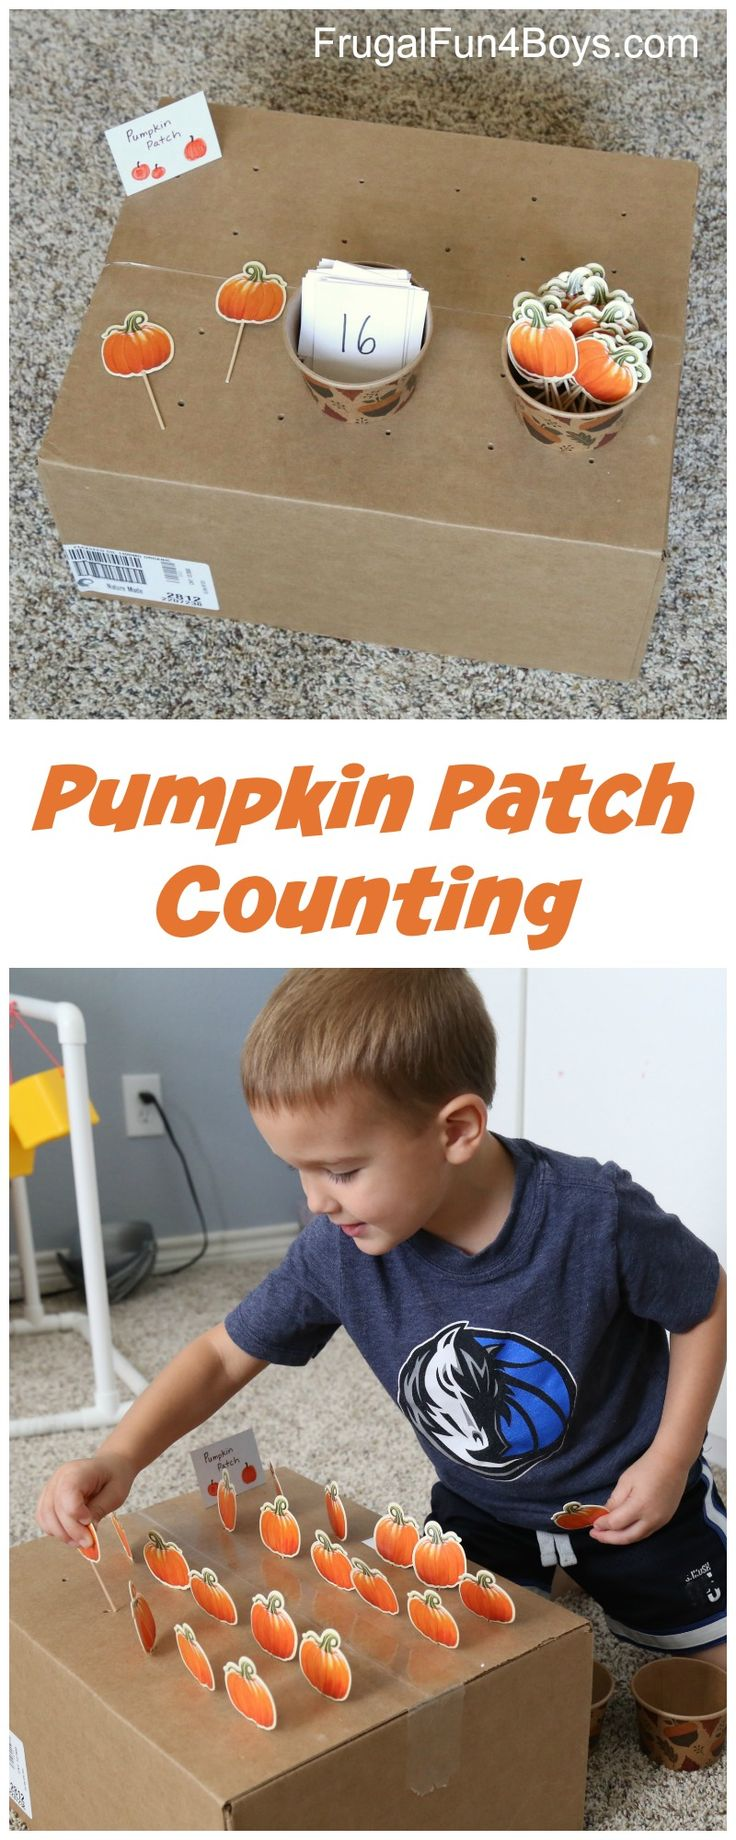 Pumpkin Patch Fine Motor and Counting Game - Turn a cardboard box into this hands on activity!